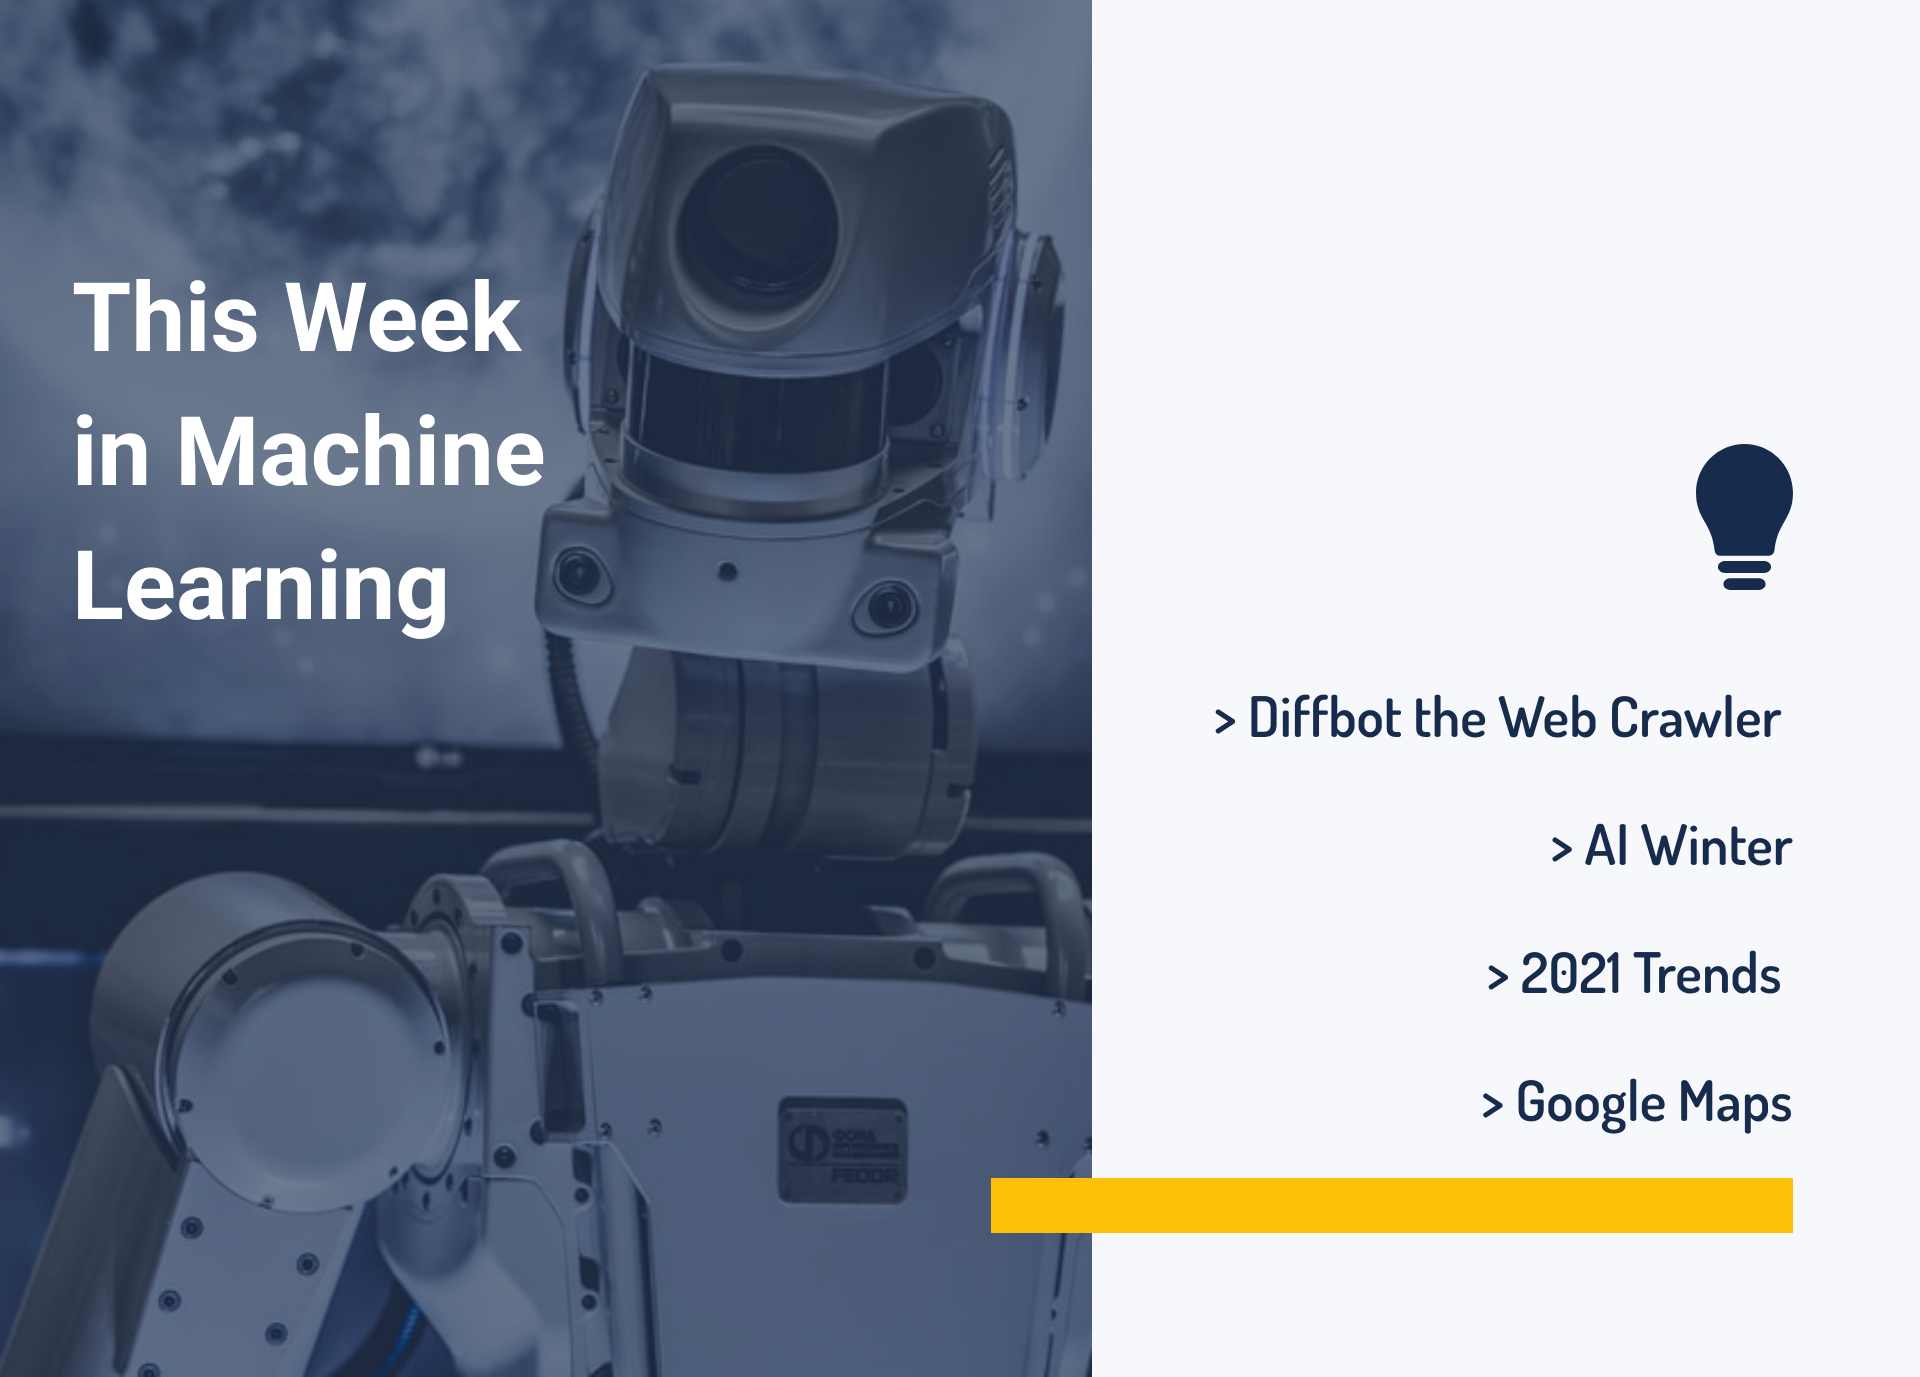 This Week in Machine Learning: Diffbot the Web Crawler, AI Winter, 2021 Trends, & Google Maps